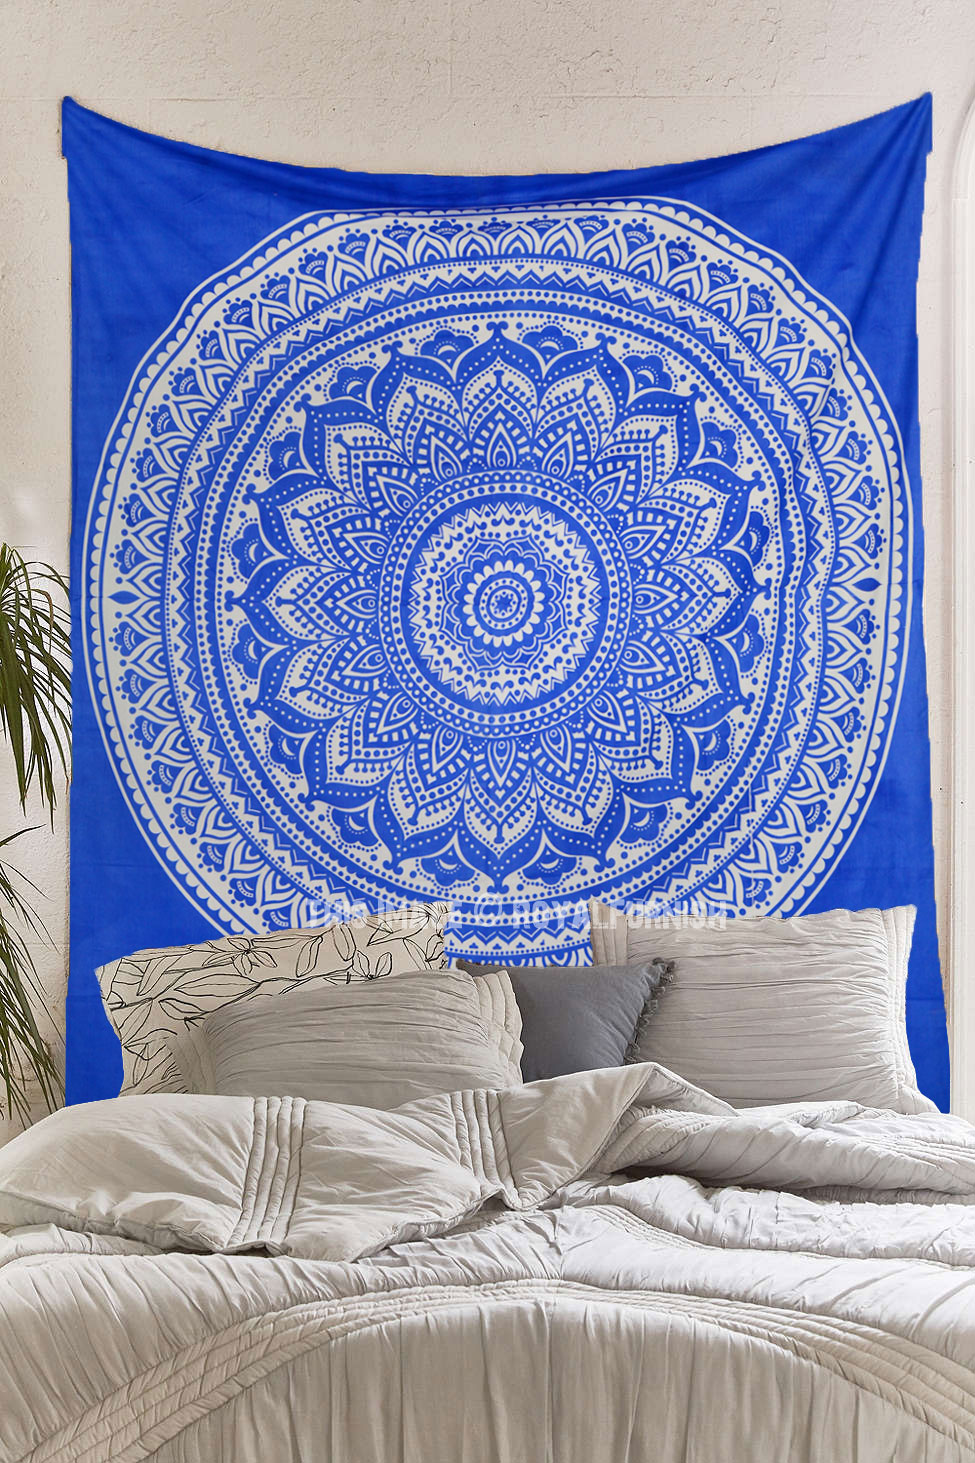 Royal Blue Bohemian Dreams Mandala Throw Bedspread Wall Tapestry  RoyalFurnishcom